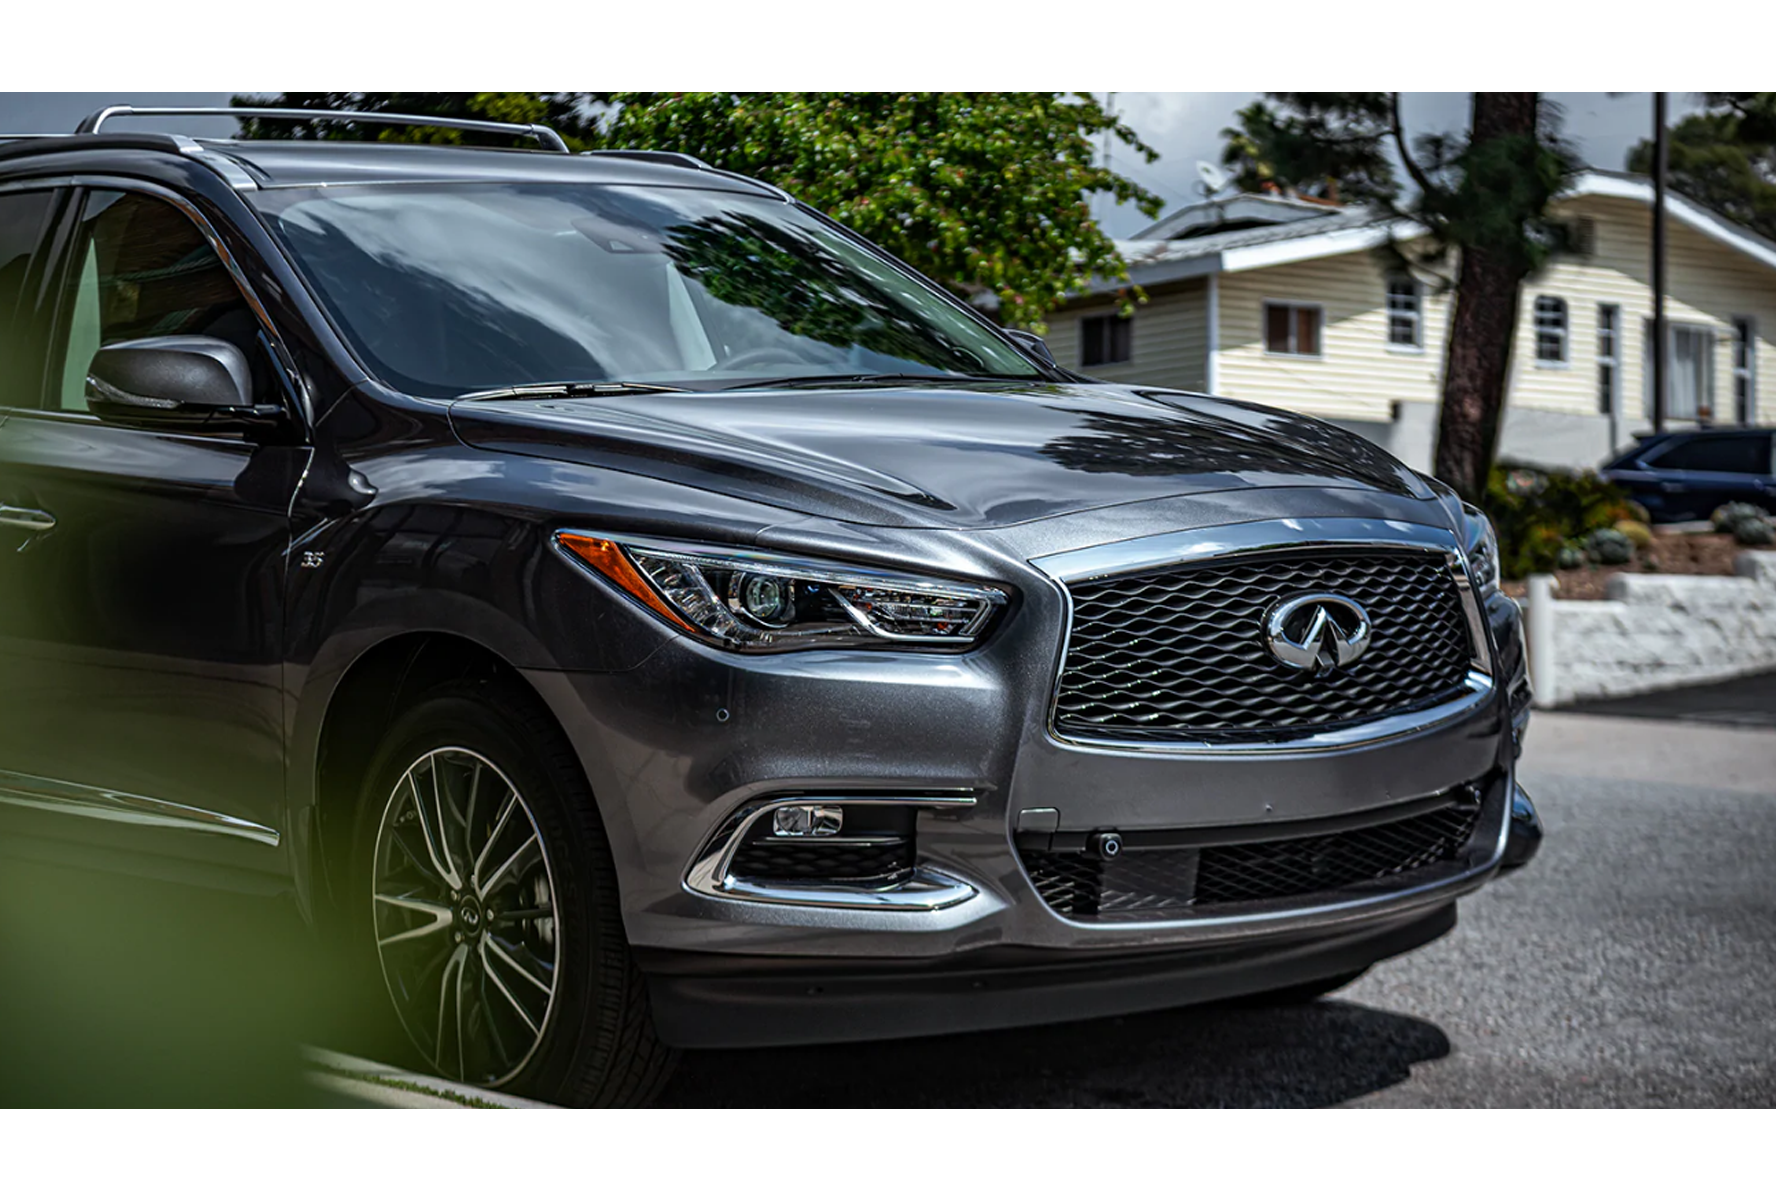 2020 INFINITI QX60 at Herrin-Gear INFINITI serving Jackson, MS